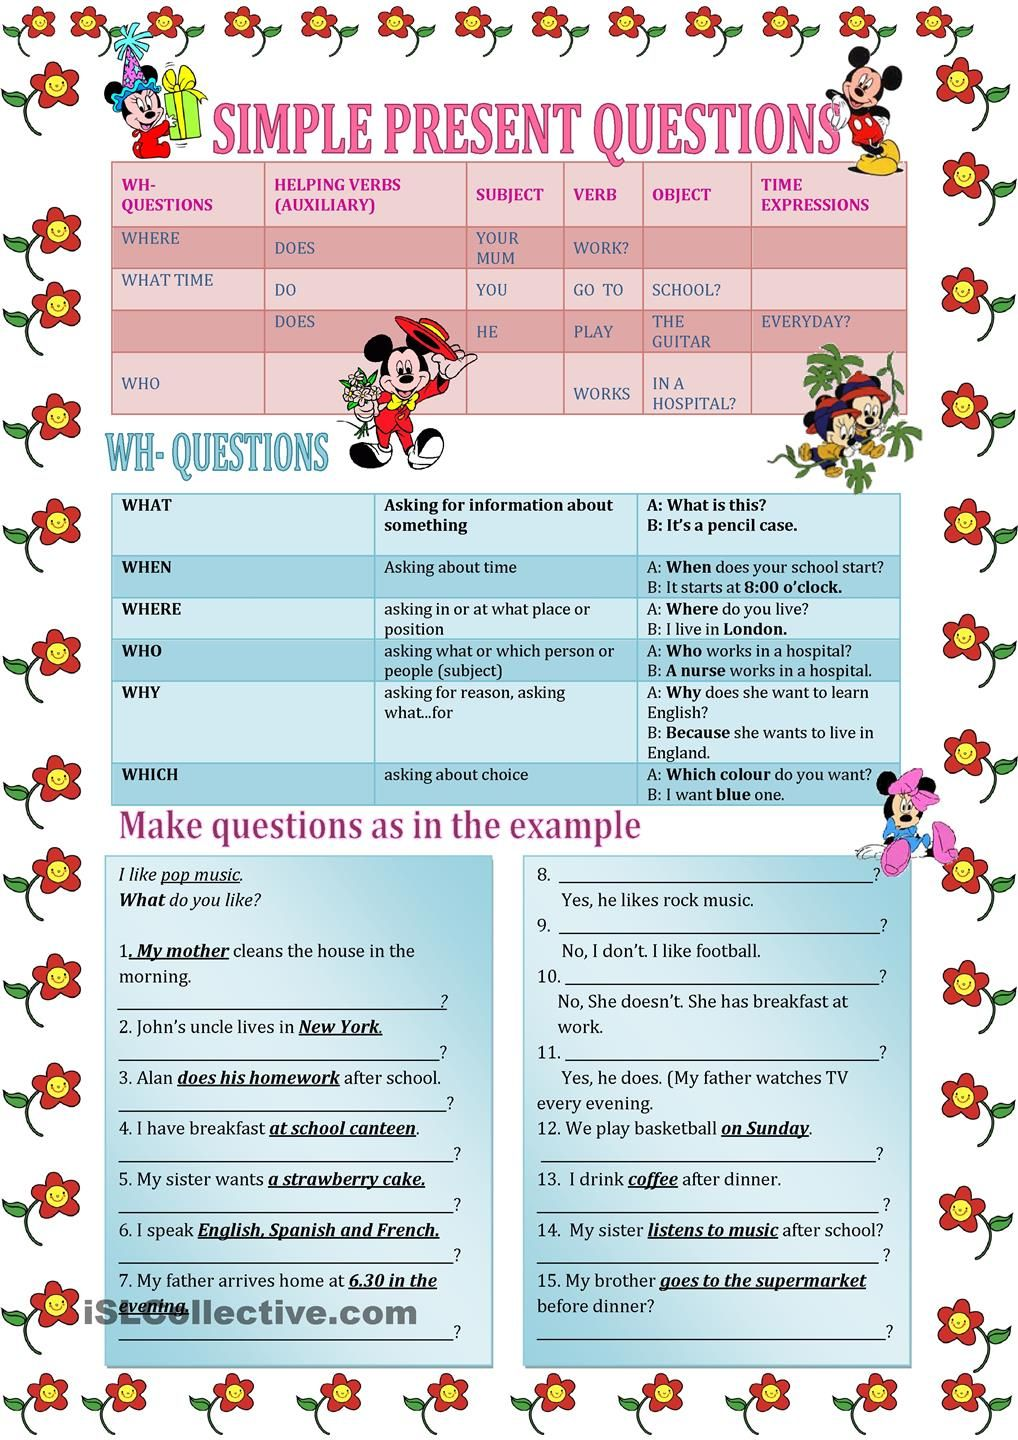 question words Wh- questions | English | Pinterest | Wh questions ...